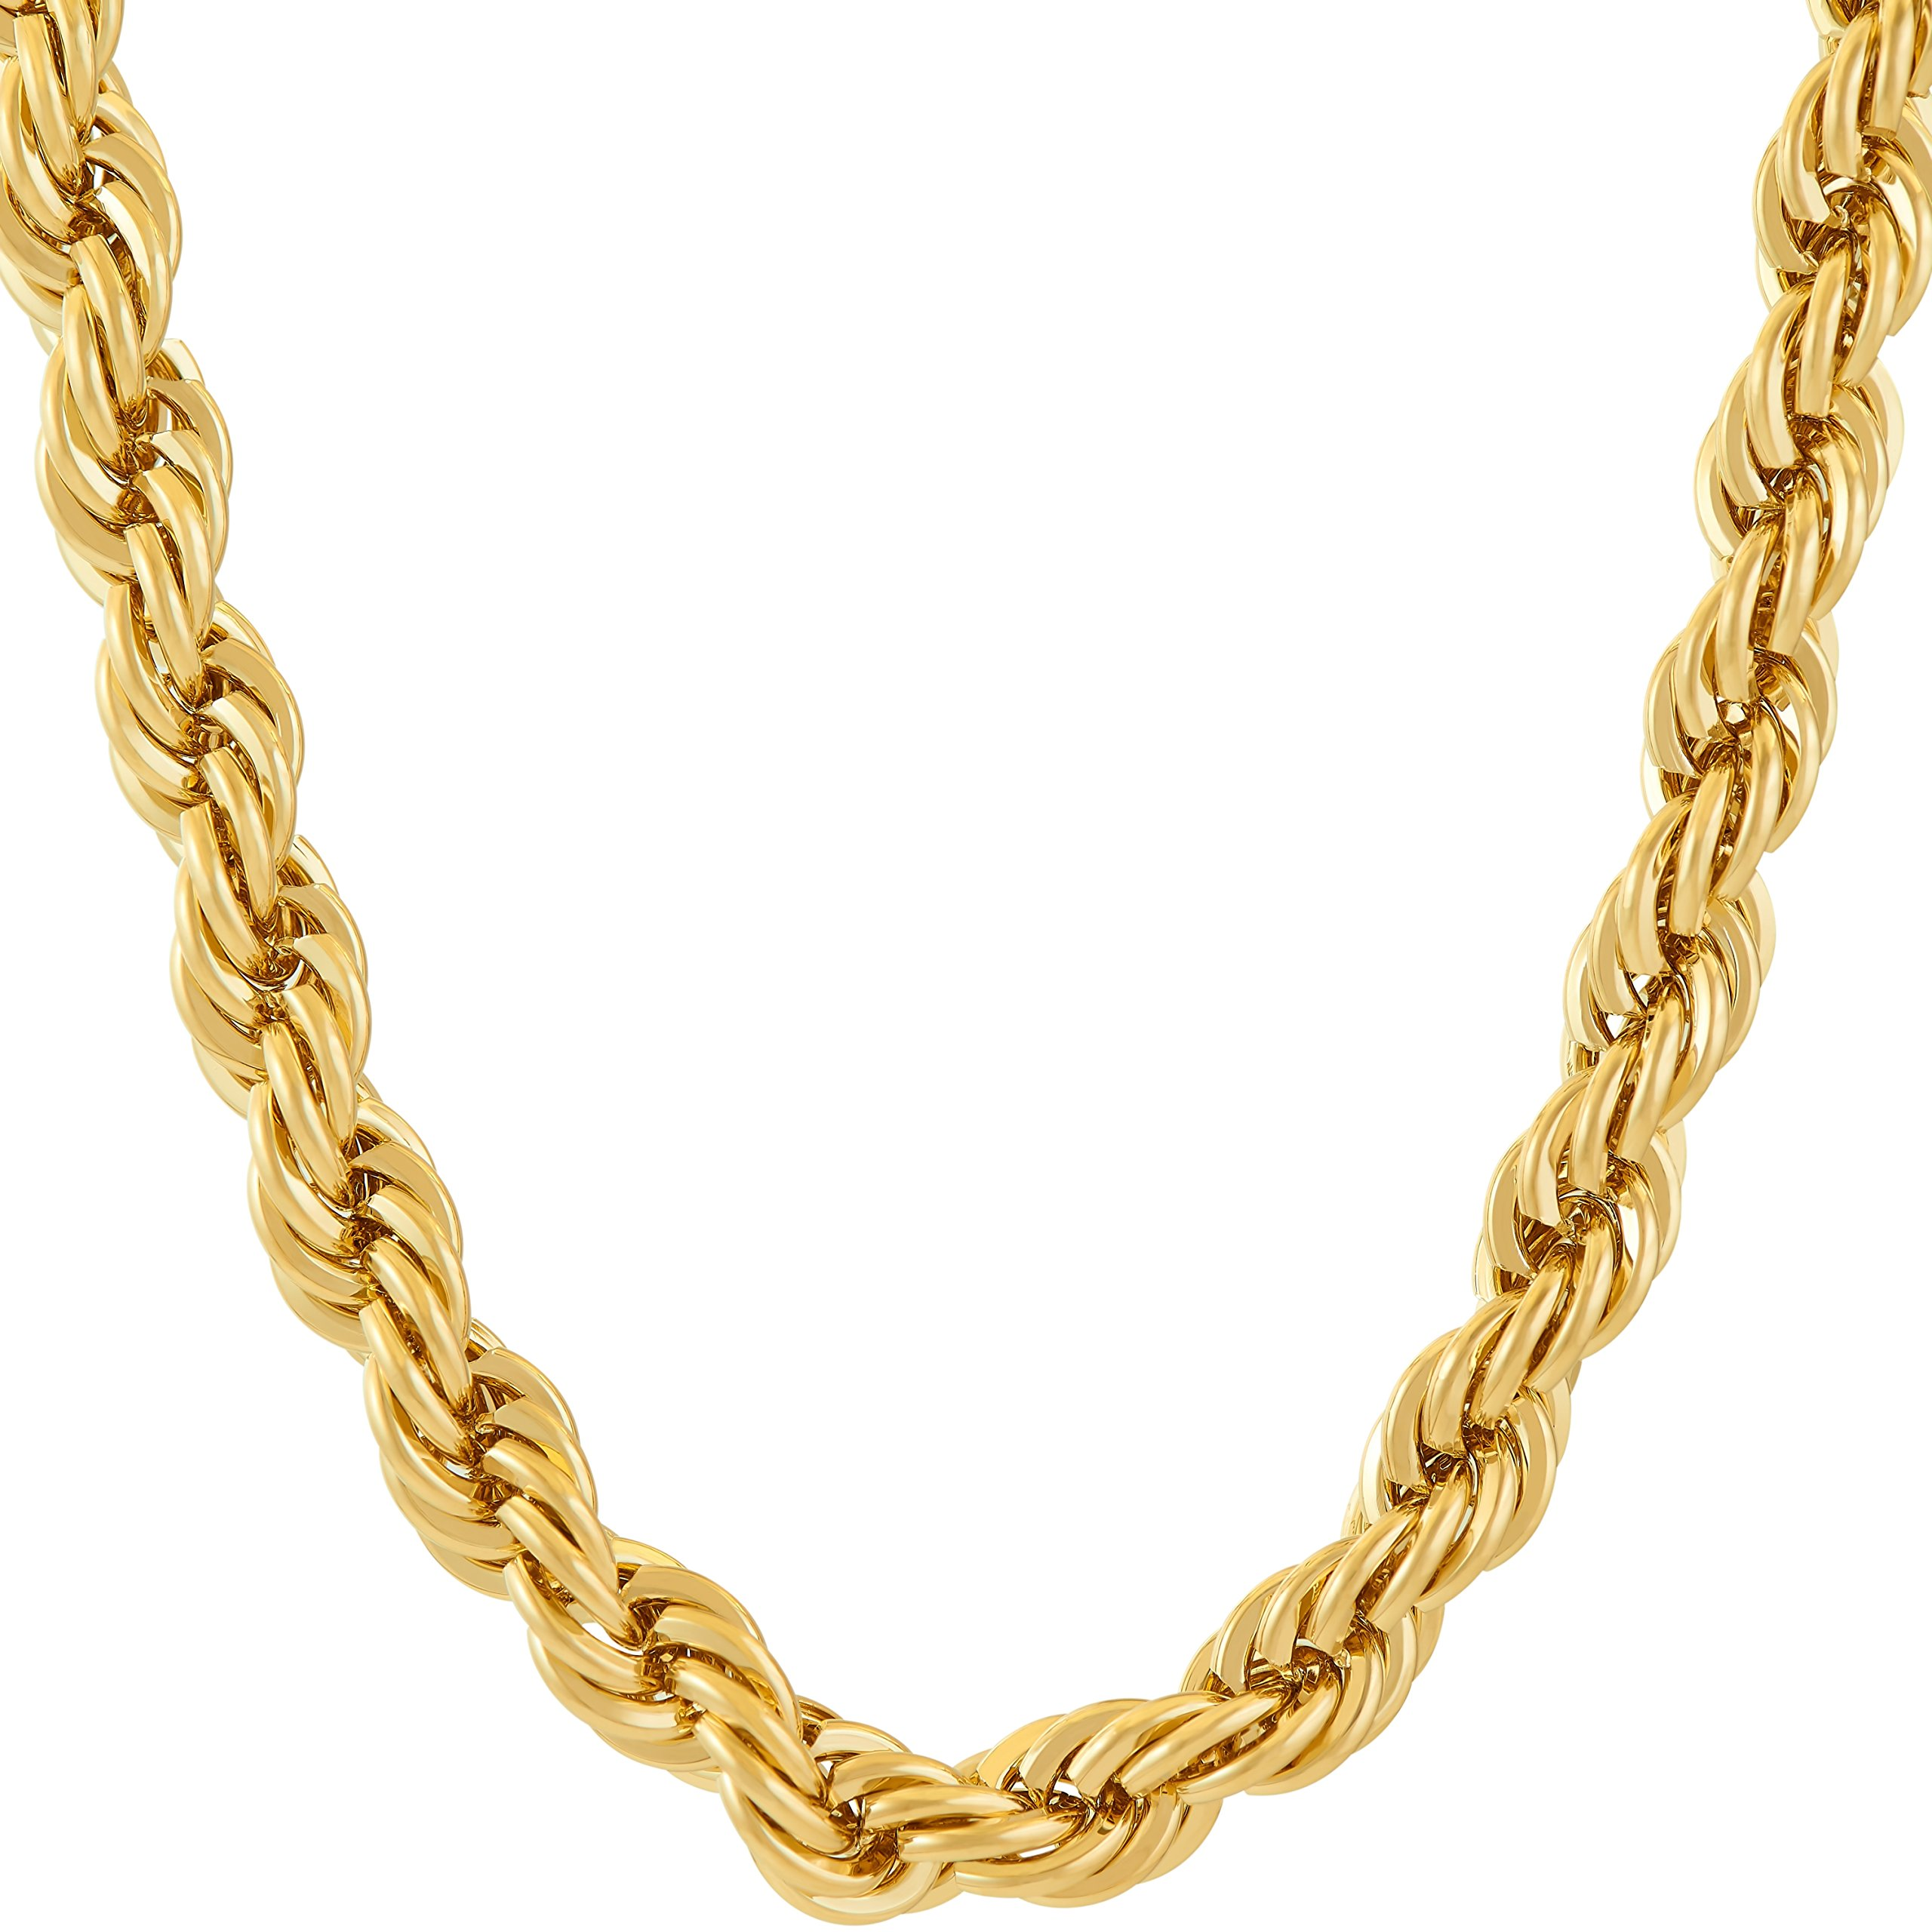 Lifetime Jewelry Rope Chain 7MM, 24K Diamond Cut Fashion Jewelry Necklaces in Yellow or White Gold Over Semi Precious Metals, Hip Hop or Classic, Comes with Box or Pouch, 30 Inches